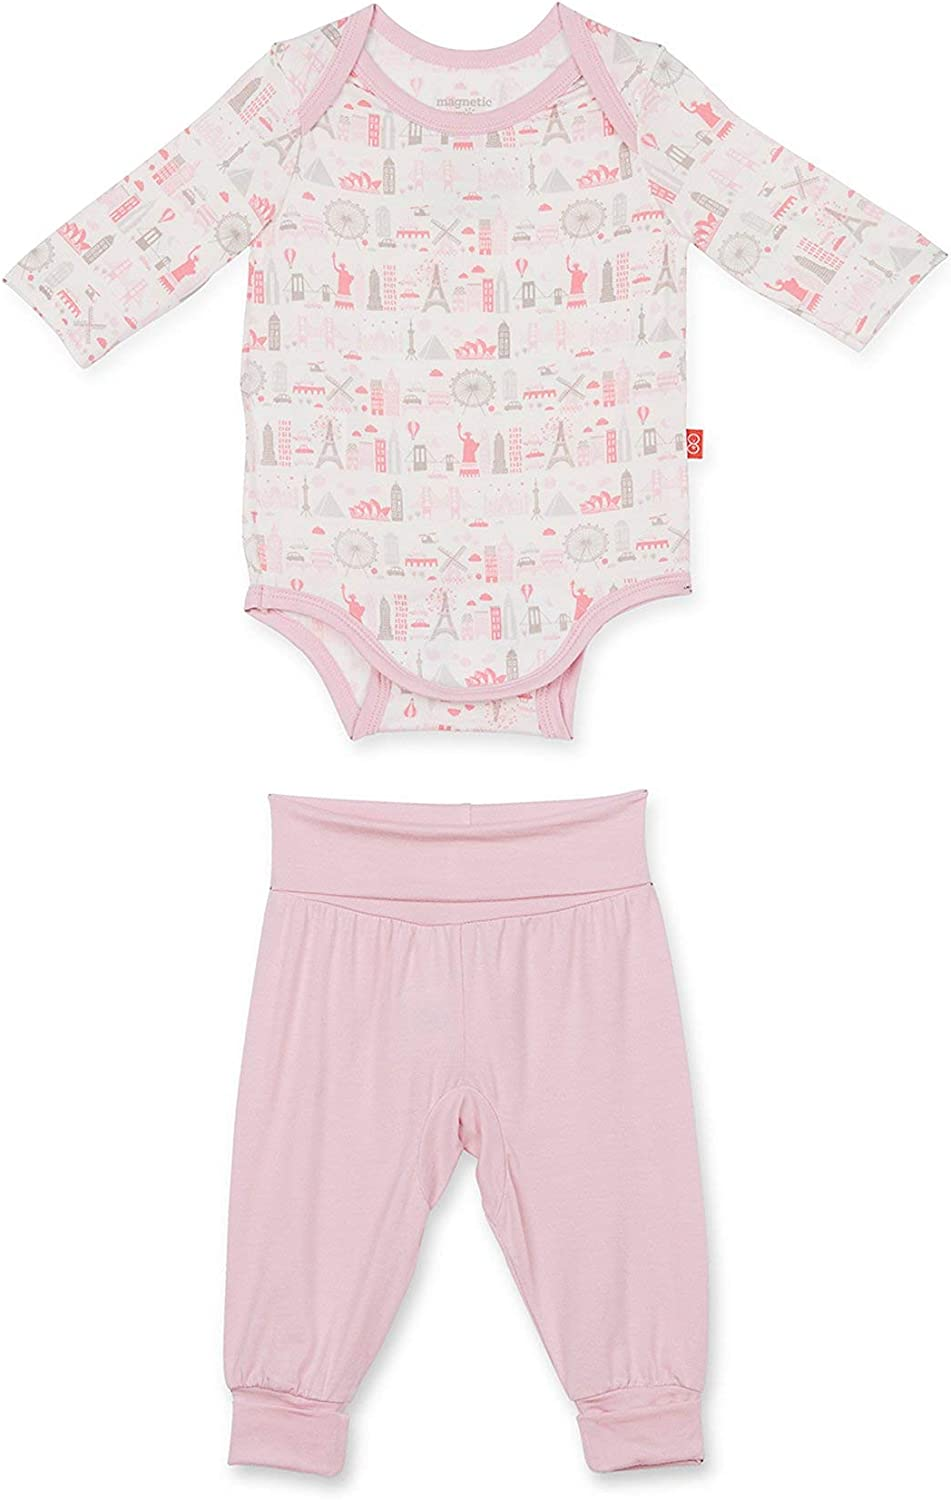 Magnificent Baby Magnetic Me Modal Magnetic Onesie//Harem Pant Set